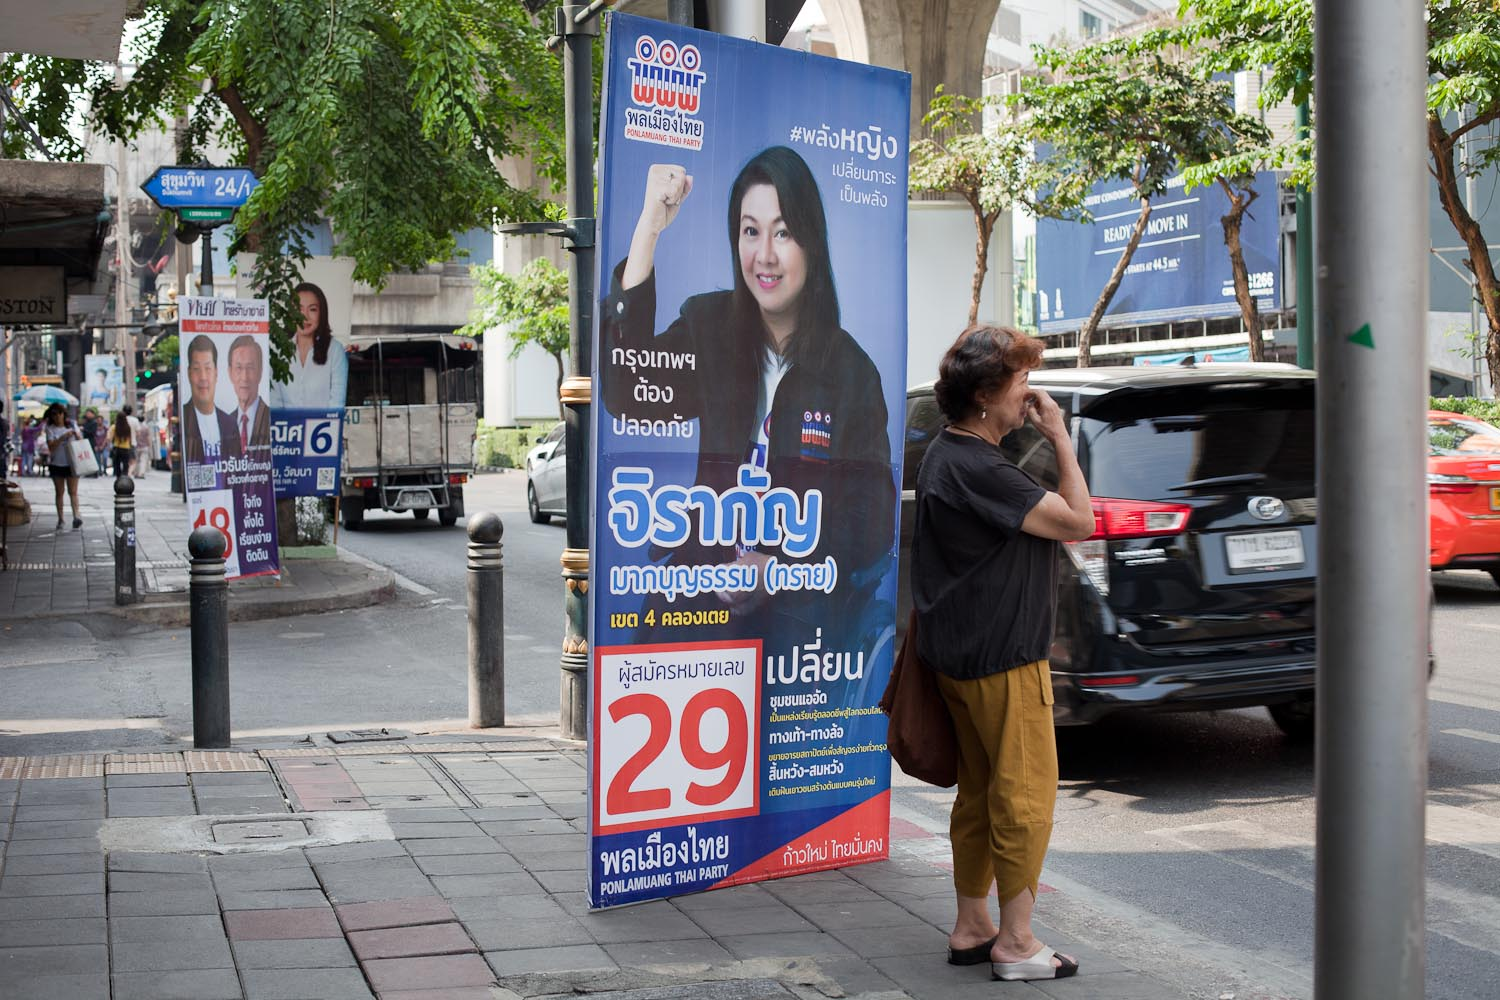 "Phak Polamuang Thai (Polumuang Thai Party): ""#Women's power. Change the burden into power."" – ""Bangkok must be safe."" – ""Change crowded neighborhoods into centers for life-long learning to enter the online world. – Footpaths and streets: Expand civilized architecture for easy traveling across the city. – Despair and fulfilment: Fulfill the dreams of young people to create examples for the new generation."""